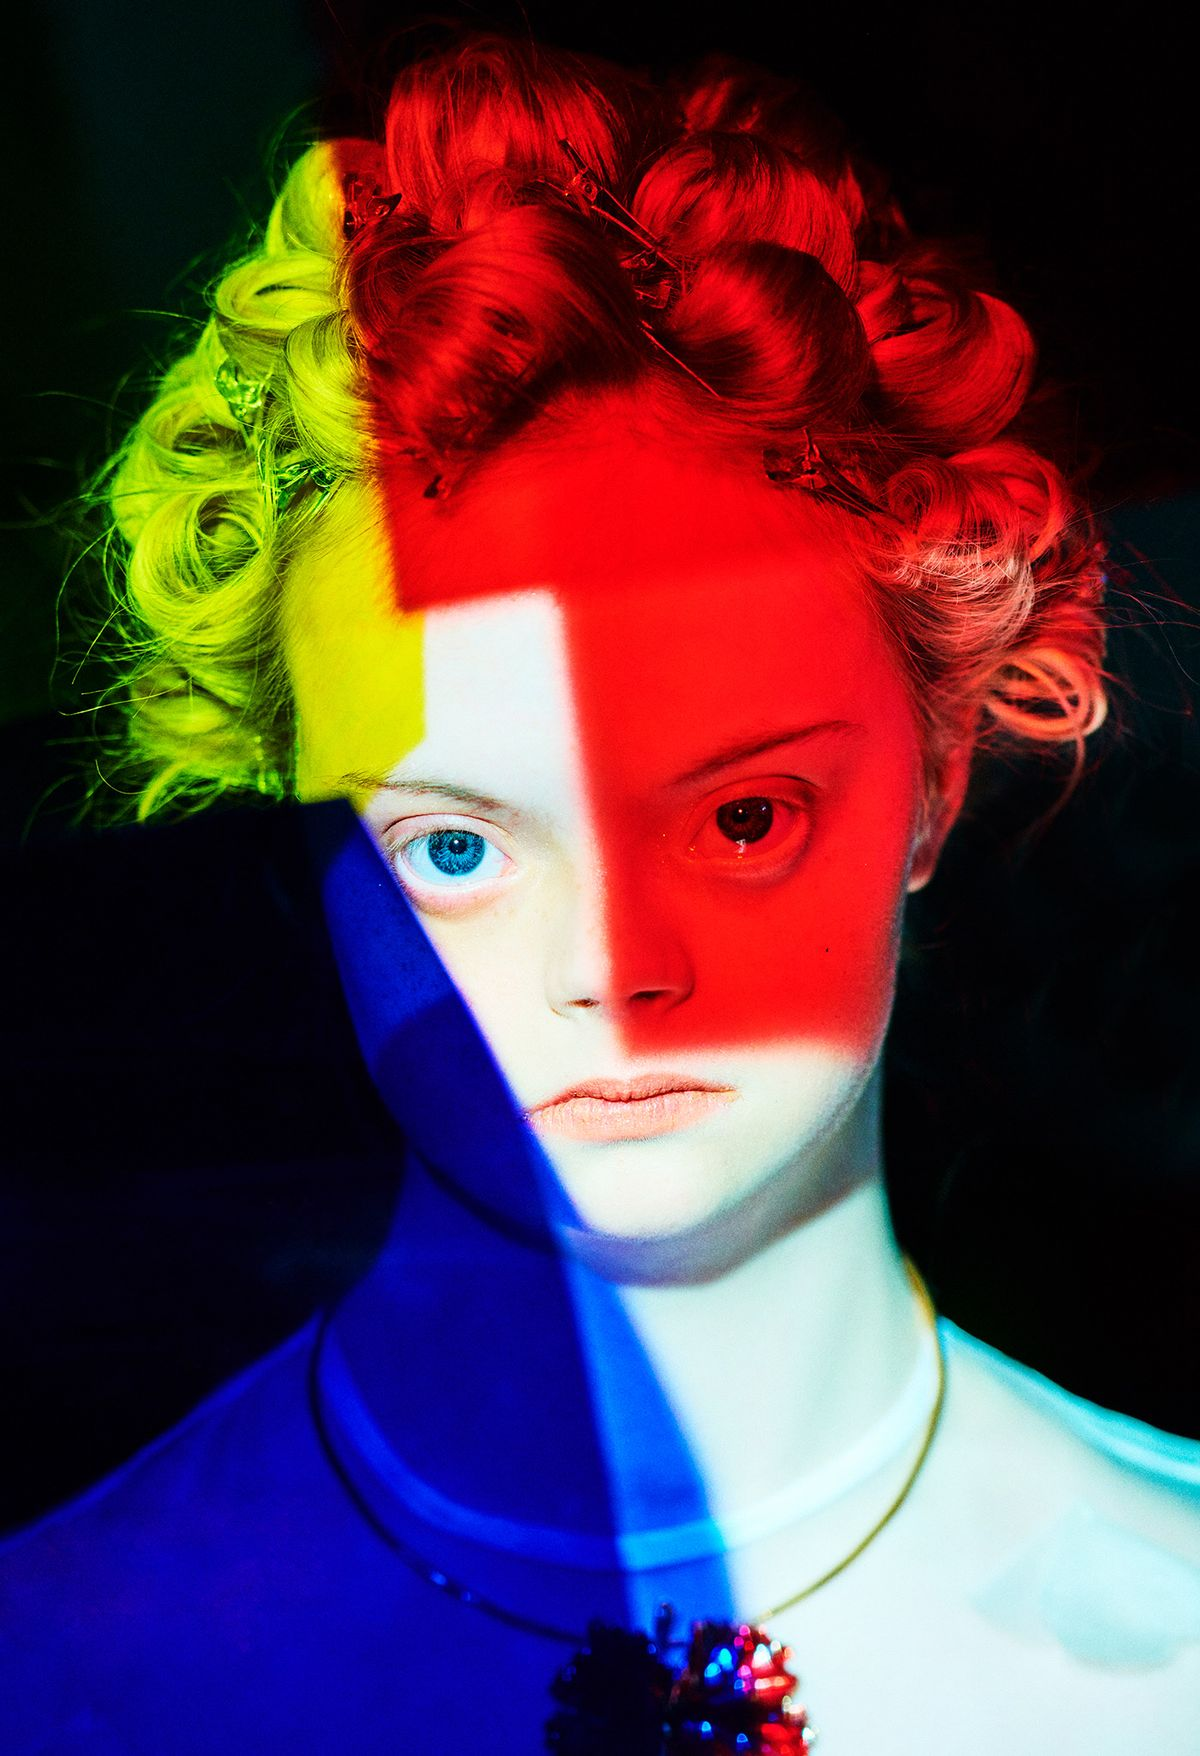 Stunning color block portrait of Lily Moore by Elizaveta Porodina for Radical Beauty Project.